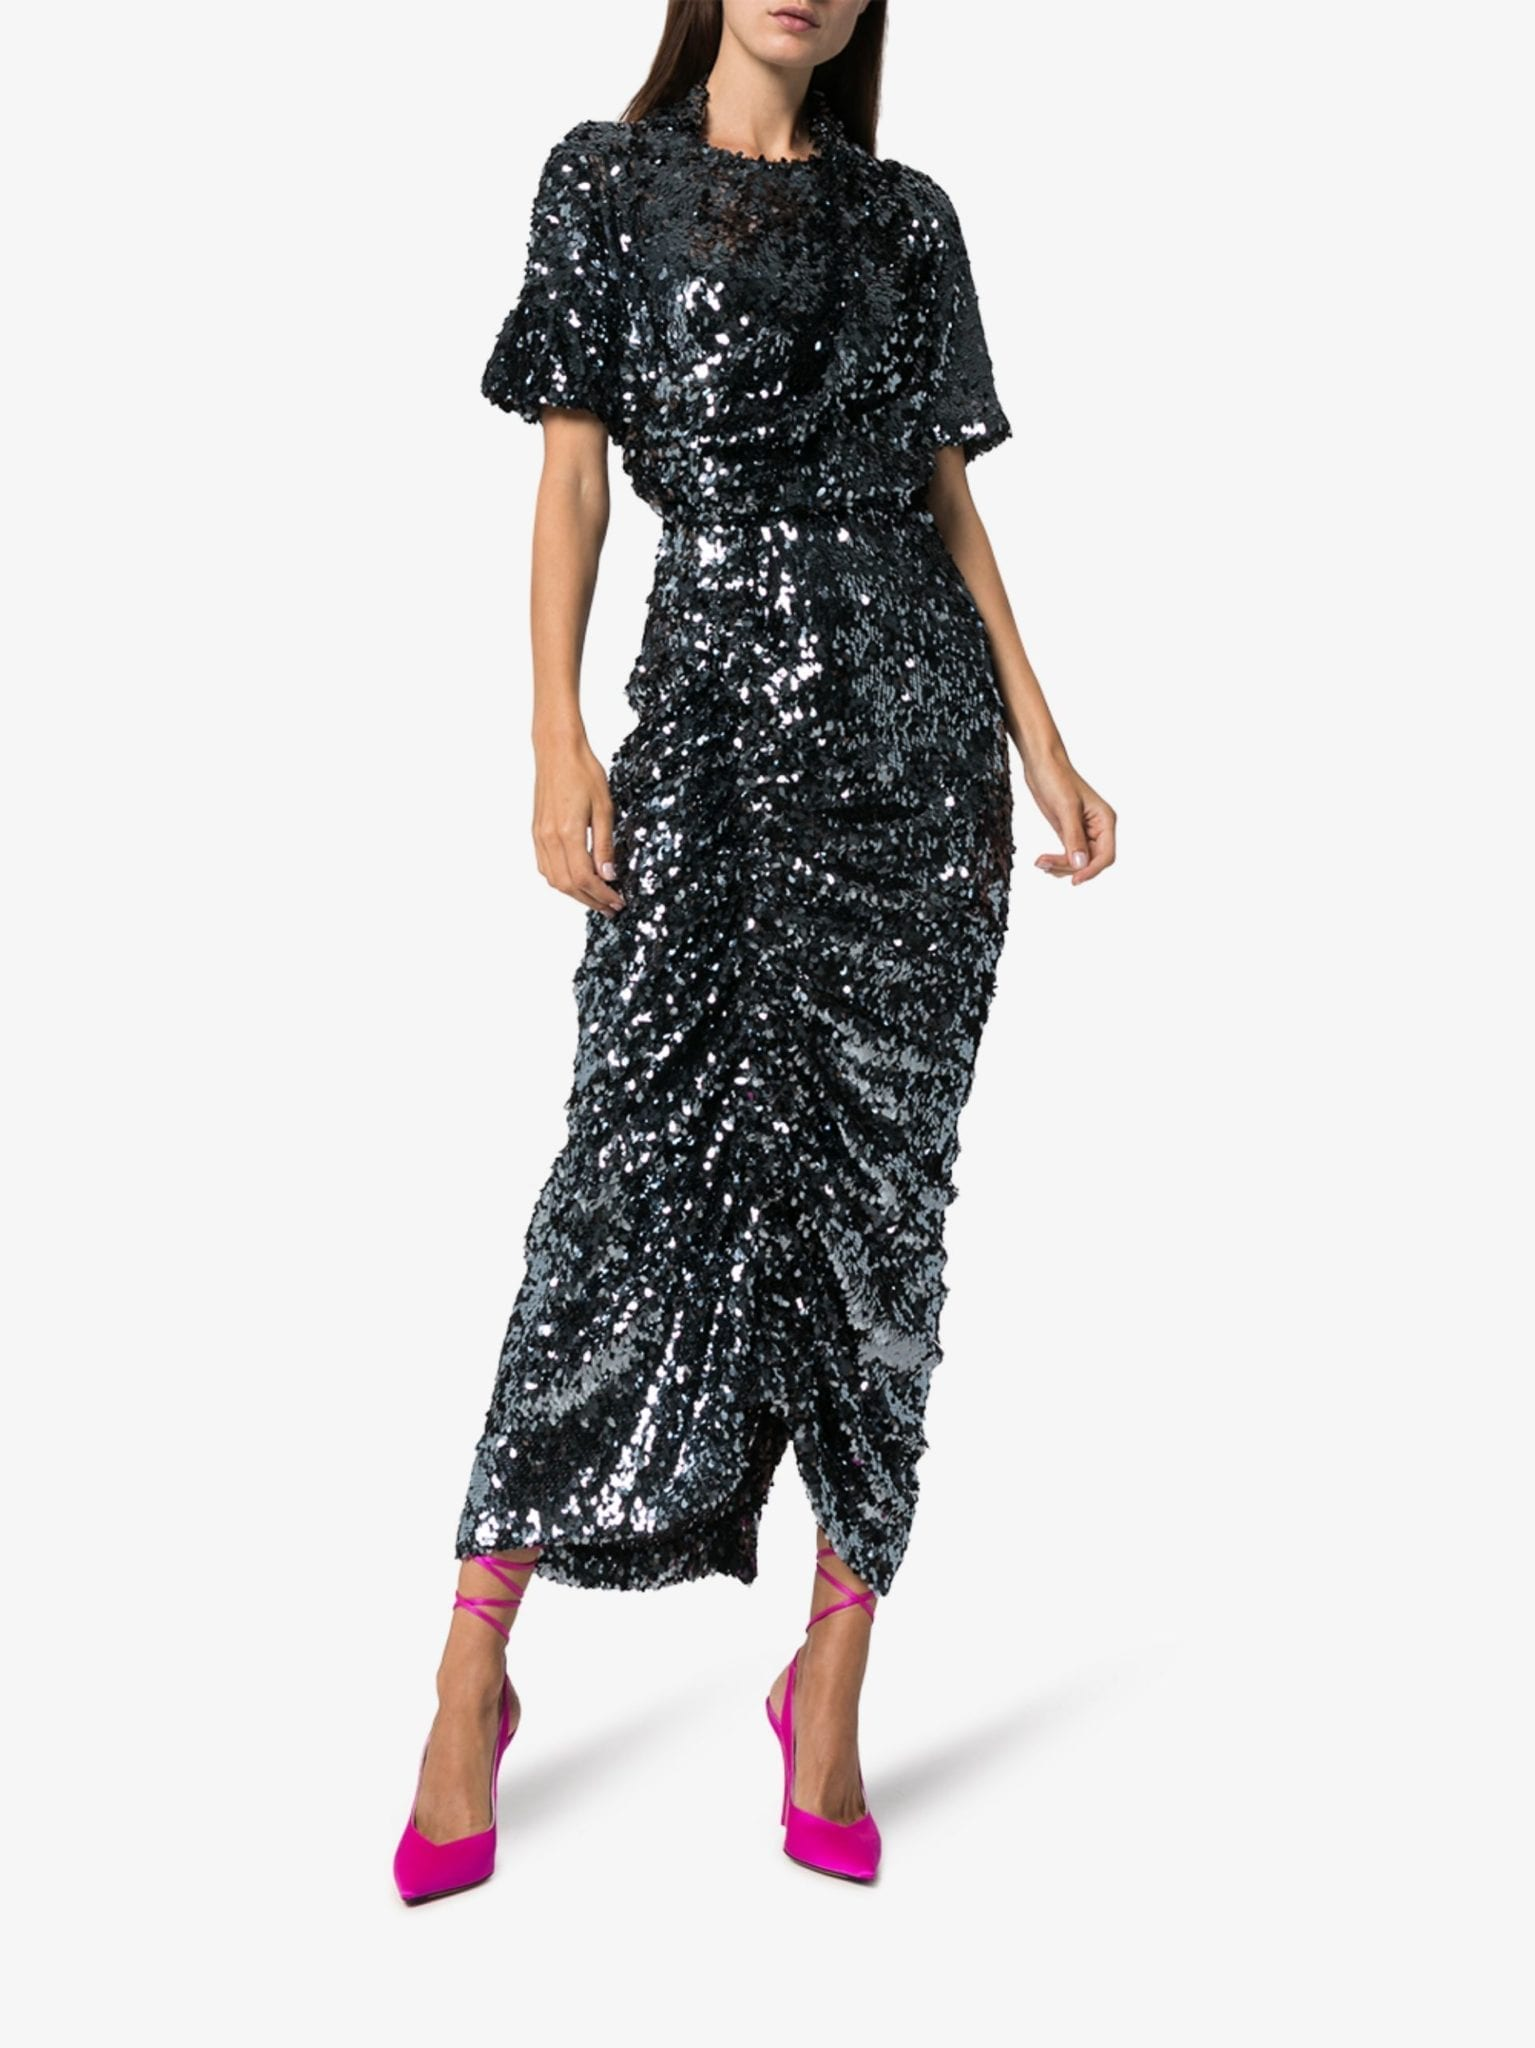 PREEN BY THORNTON BREGAZZI Sophia Sequin Ruched Midi Dress